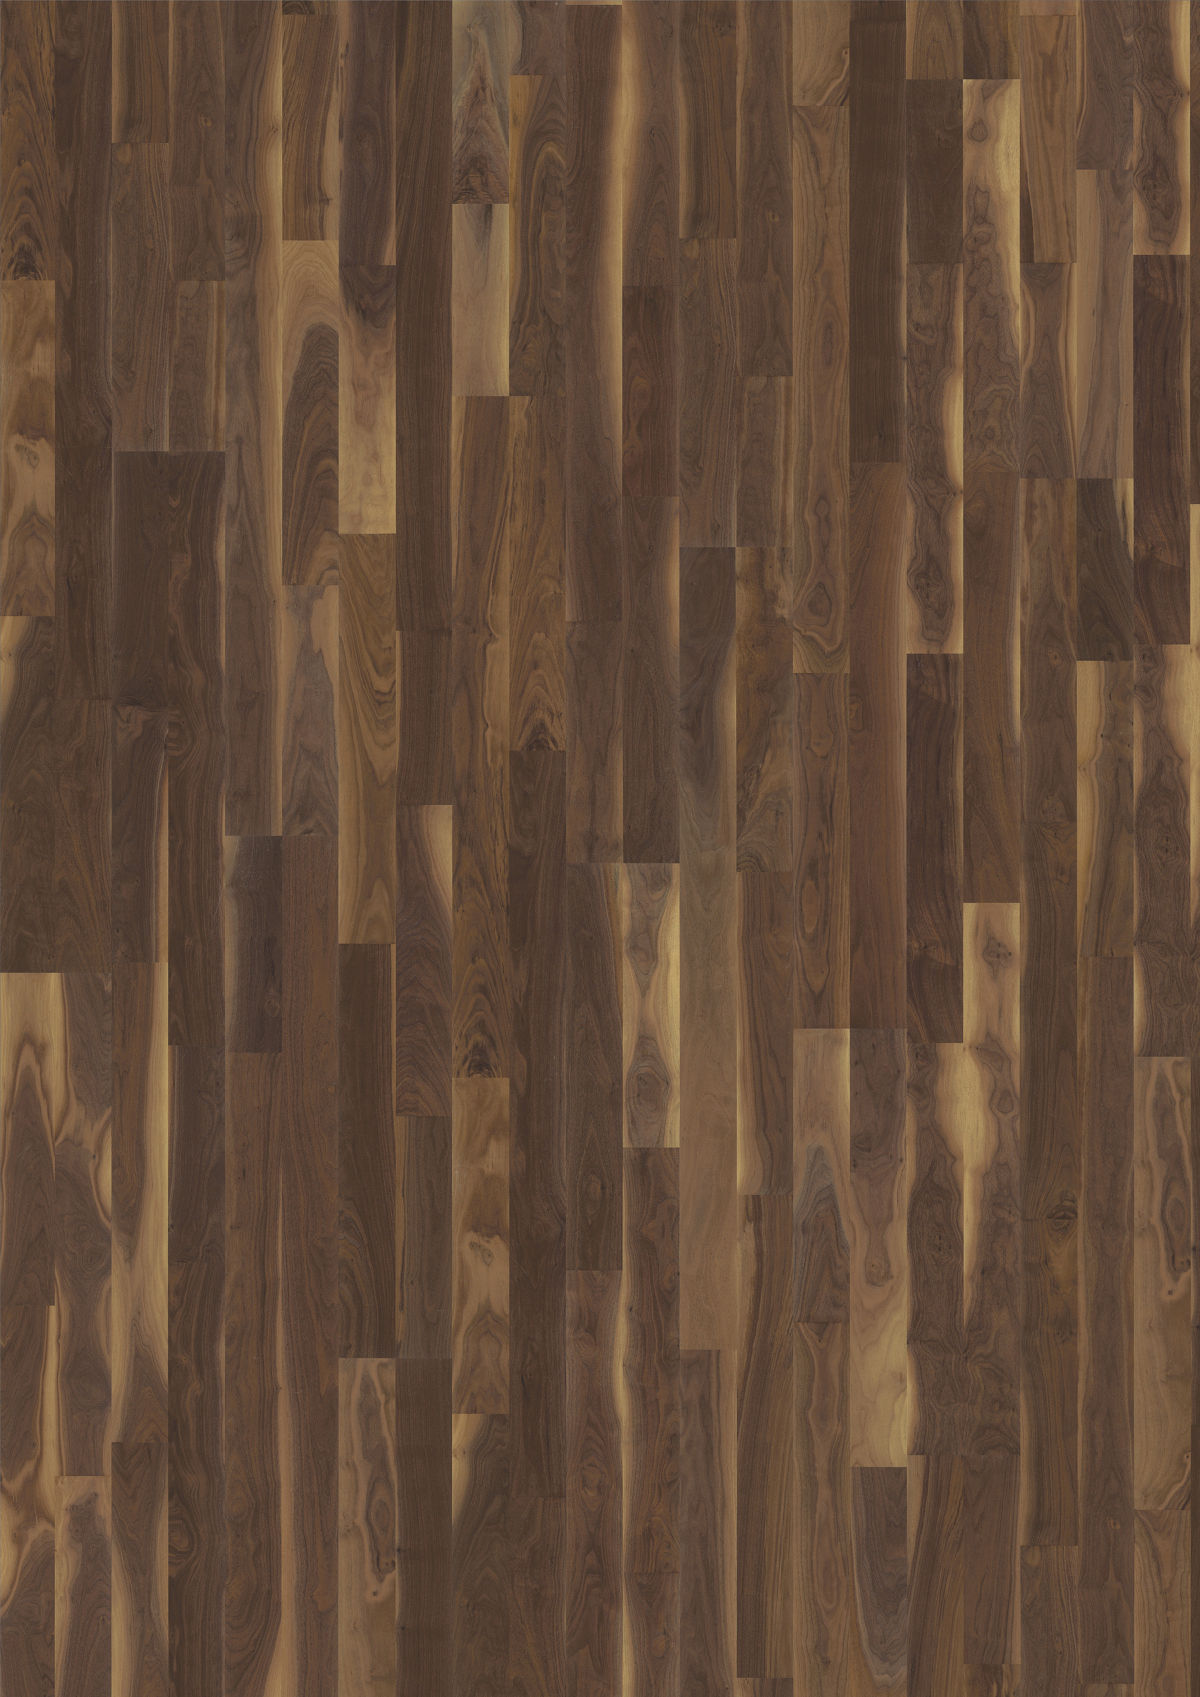 kahrs walnut georgia engineered wood flooring. Black Bedroom Furniture Sets. Home Design Ideas